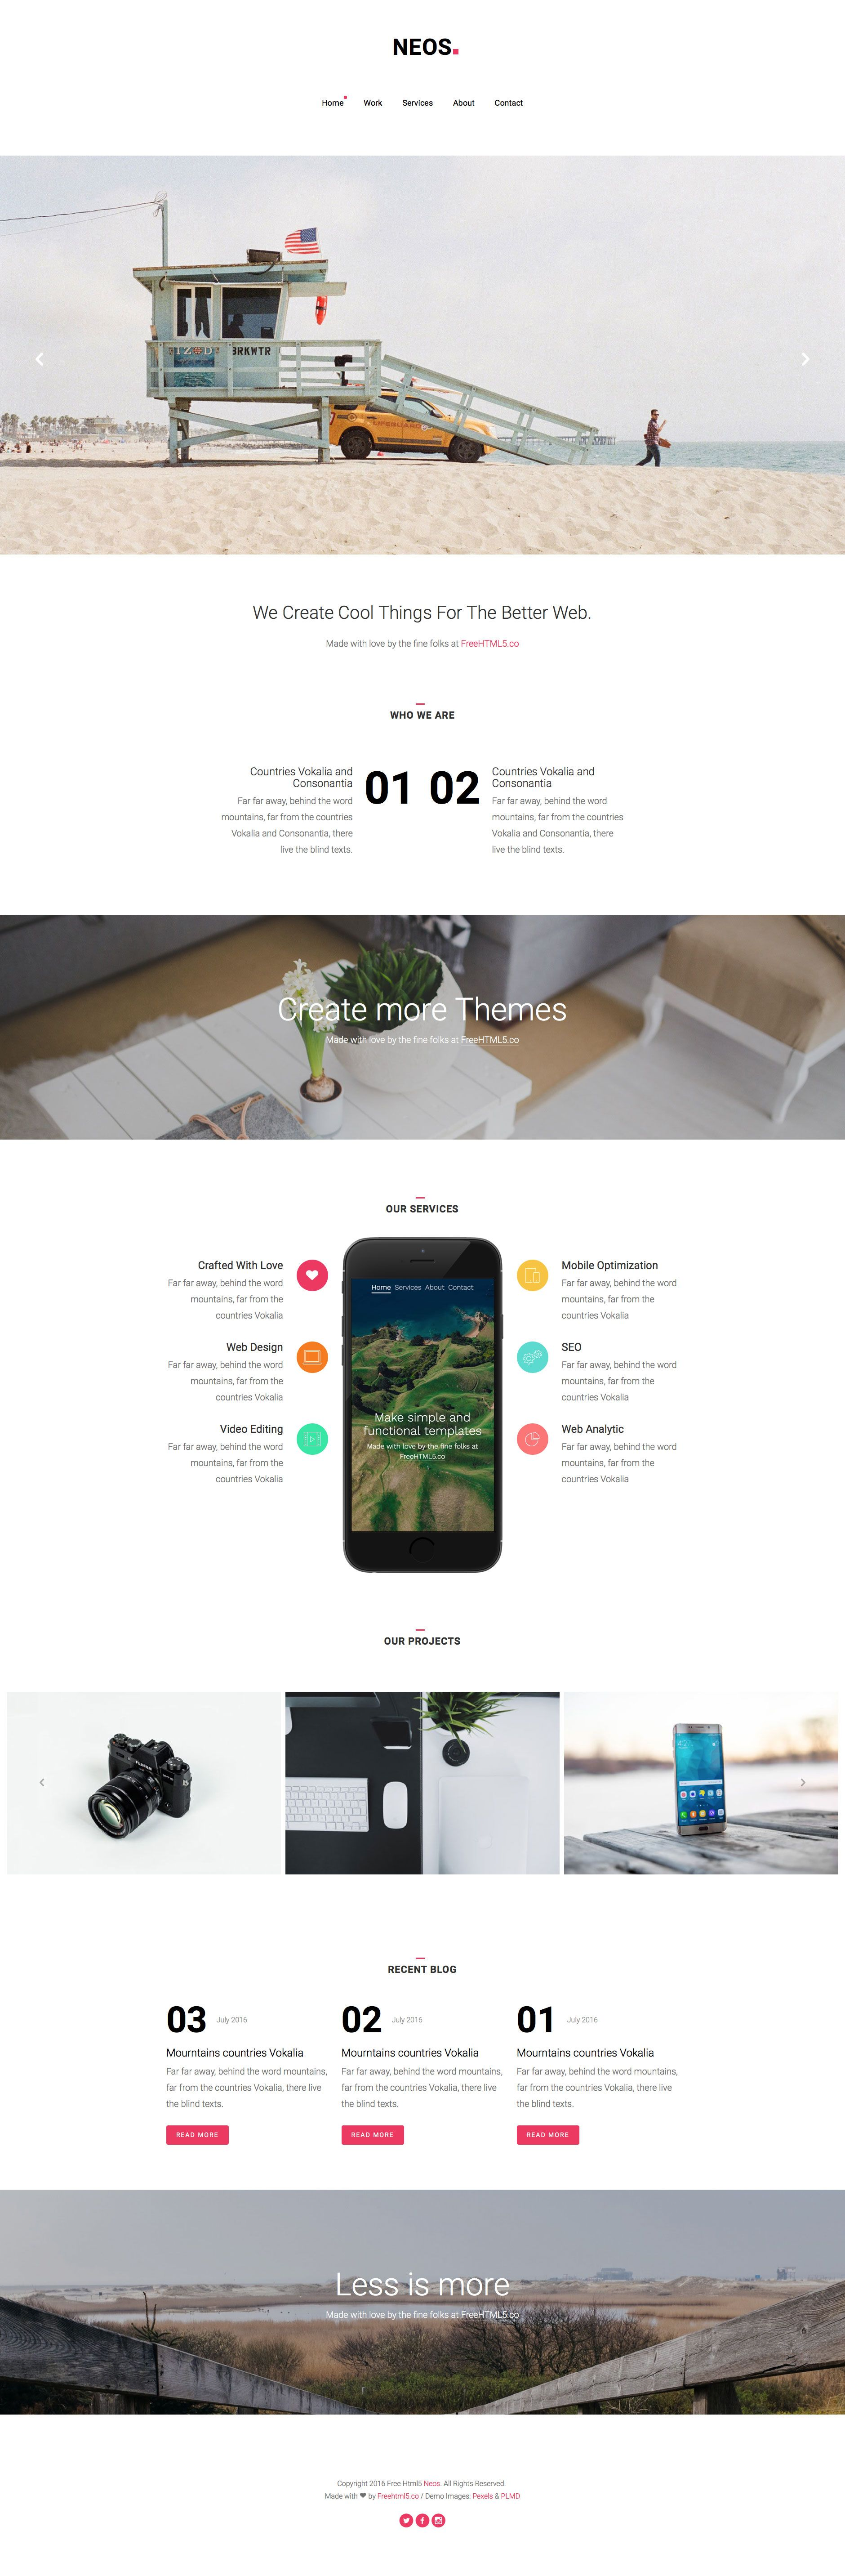 Neos is a free responsive html5 business website template based on neos is a free responsive html5 business website template based on bootstrap 3 cheaphphosting Gallery